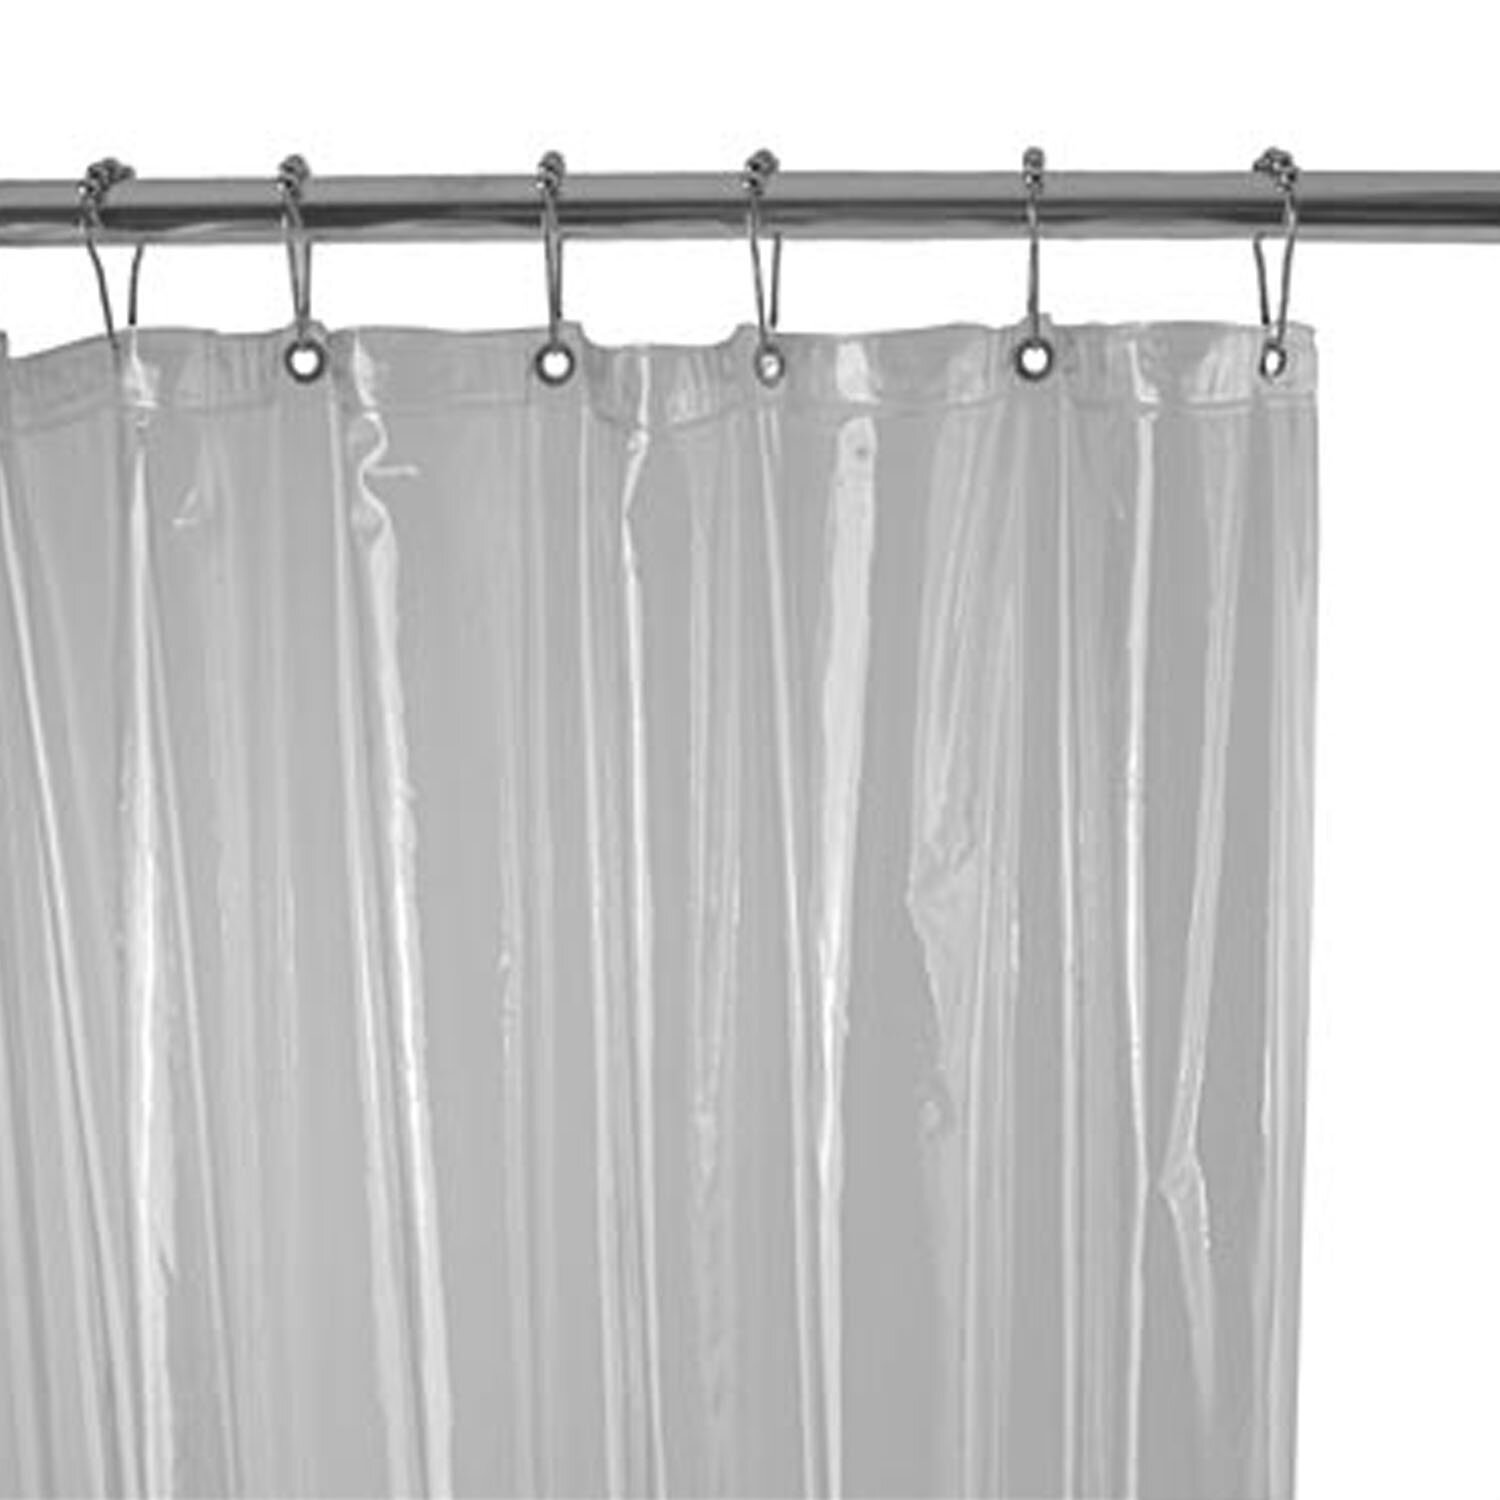 Zenith Vinyl Shower Curtain & Reviews | Wayfair